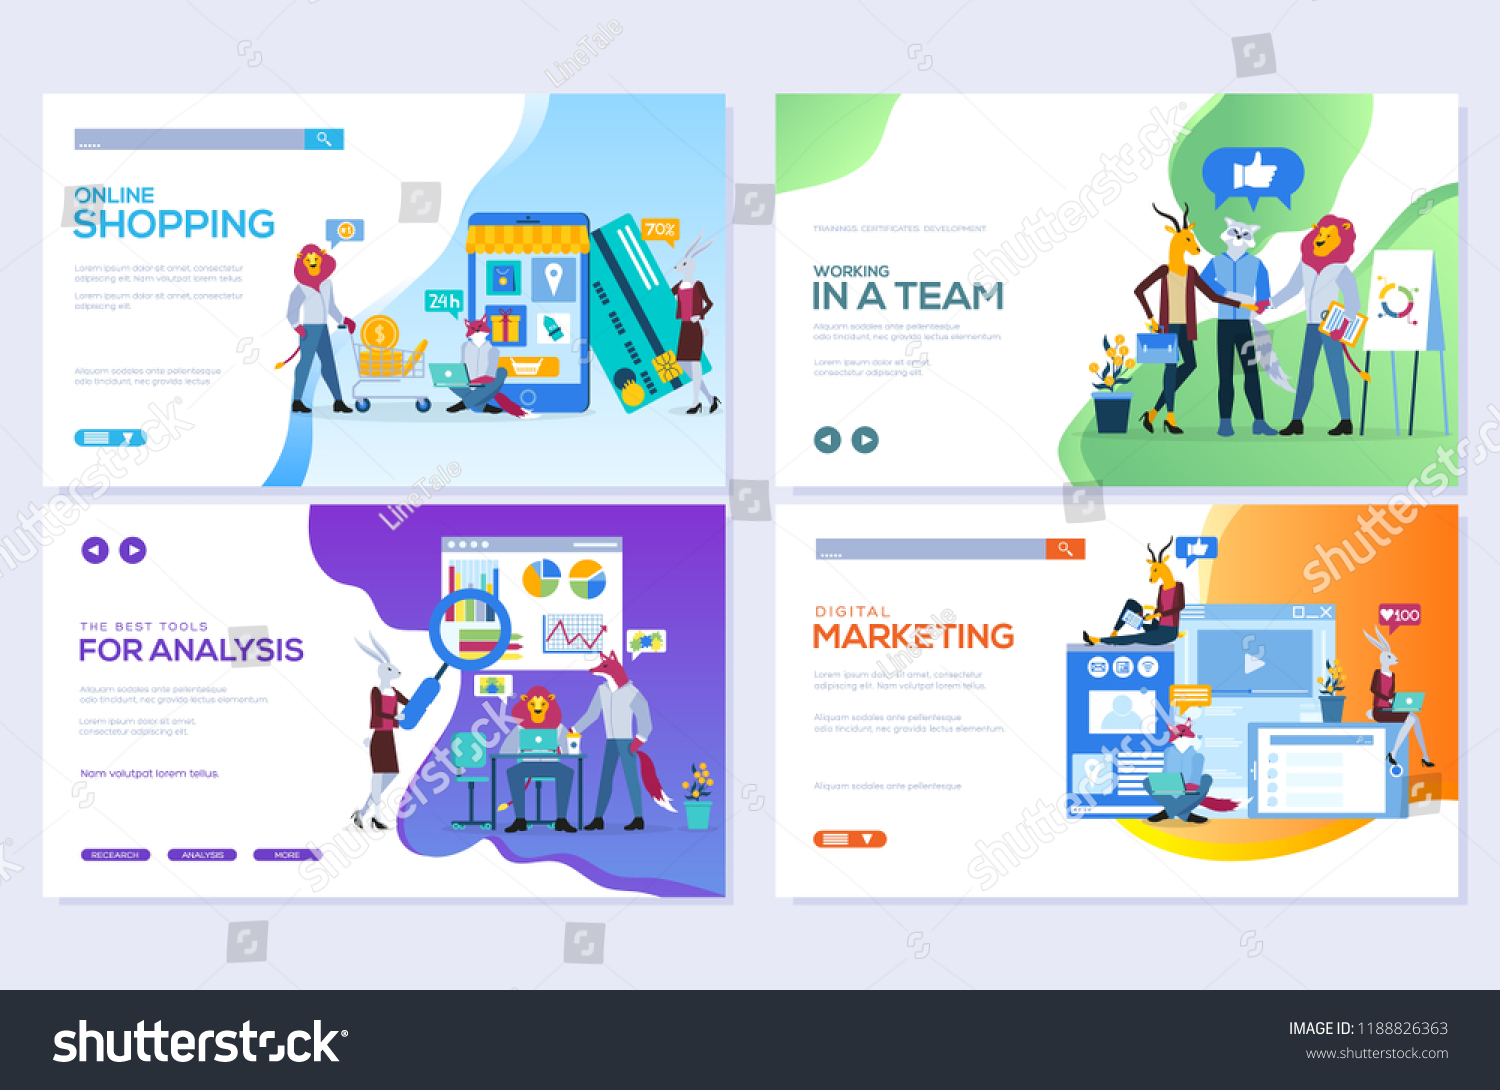 Templates Design Online Shopping Analytics Digital Image Vectorielle